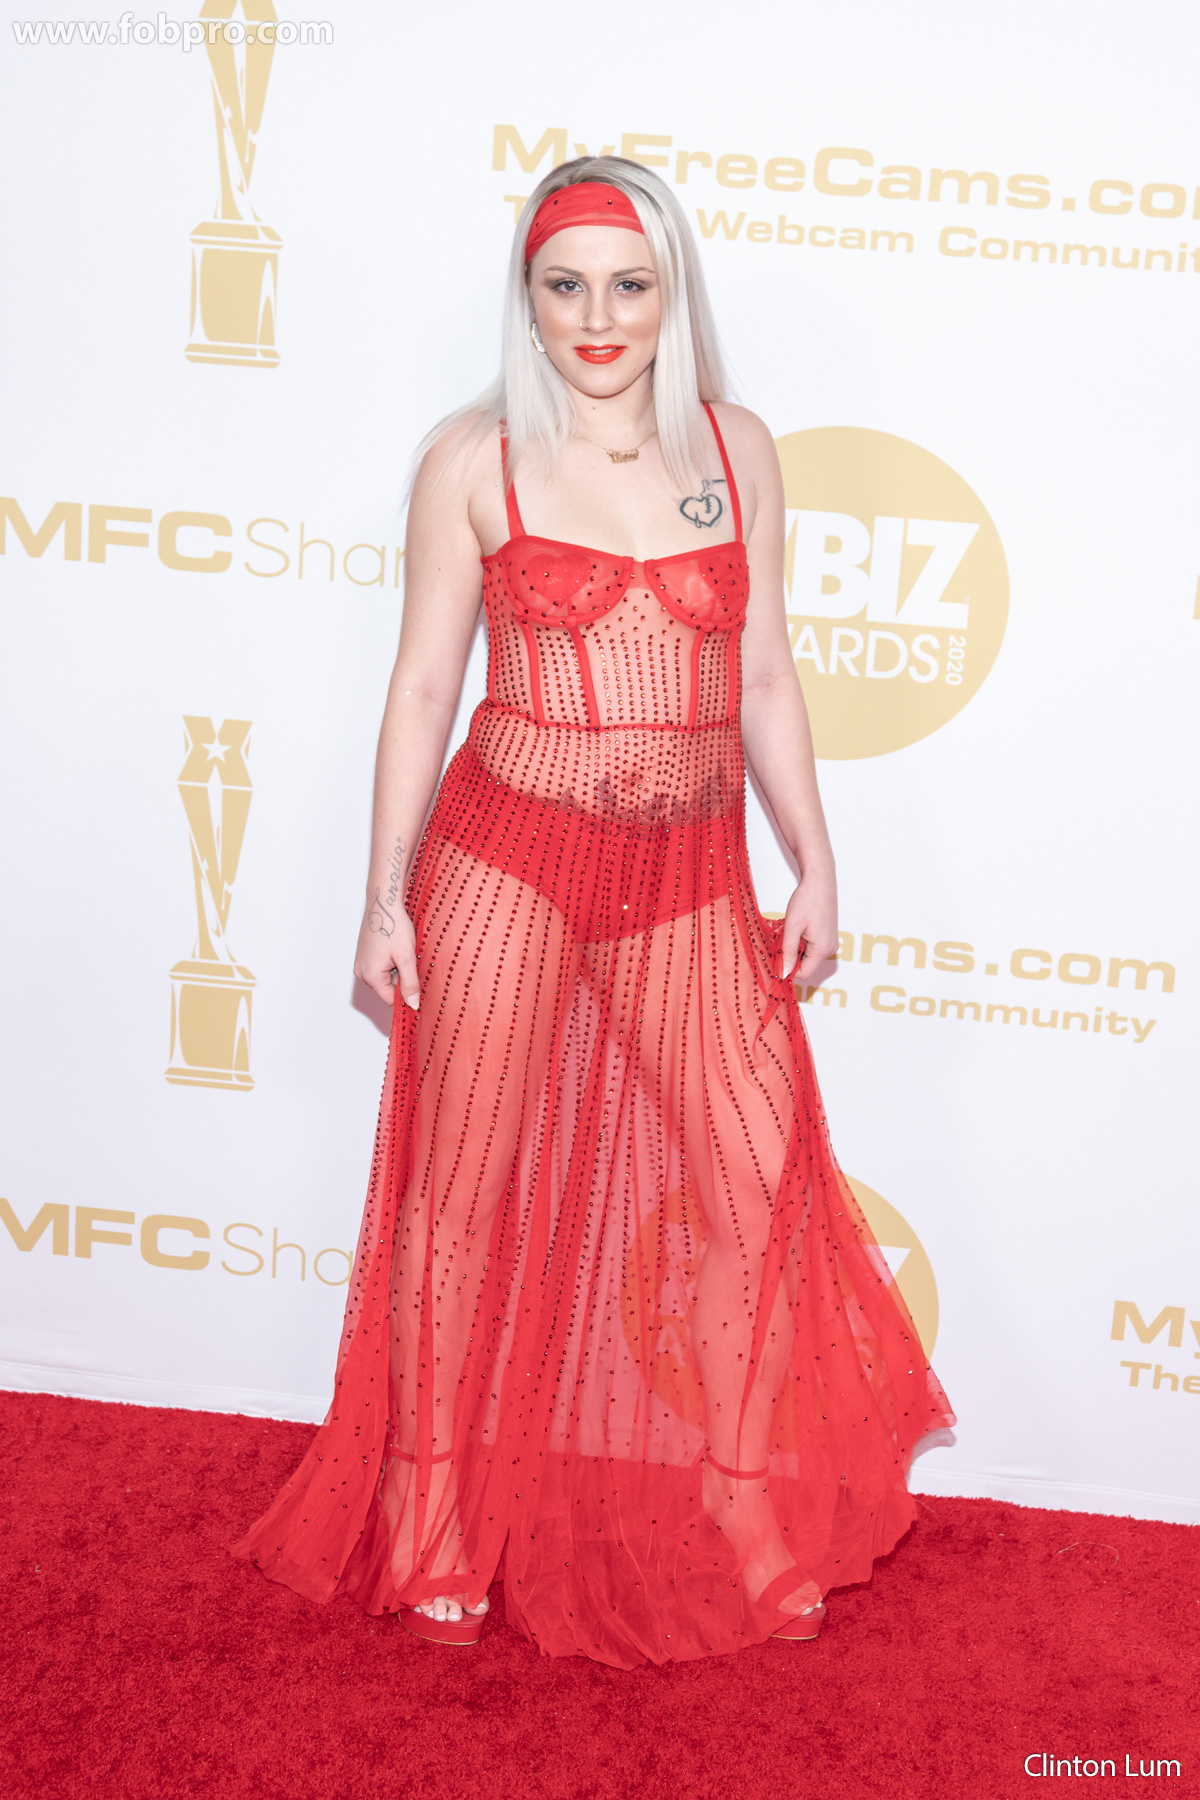 XBIZ Awards 2020 (Page 12 of 50) - FOB Productions